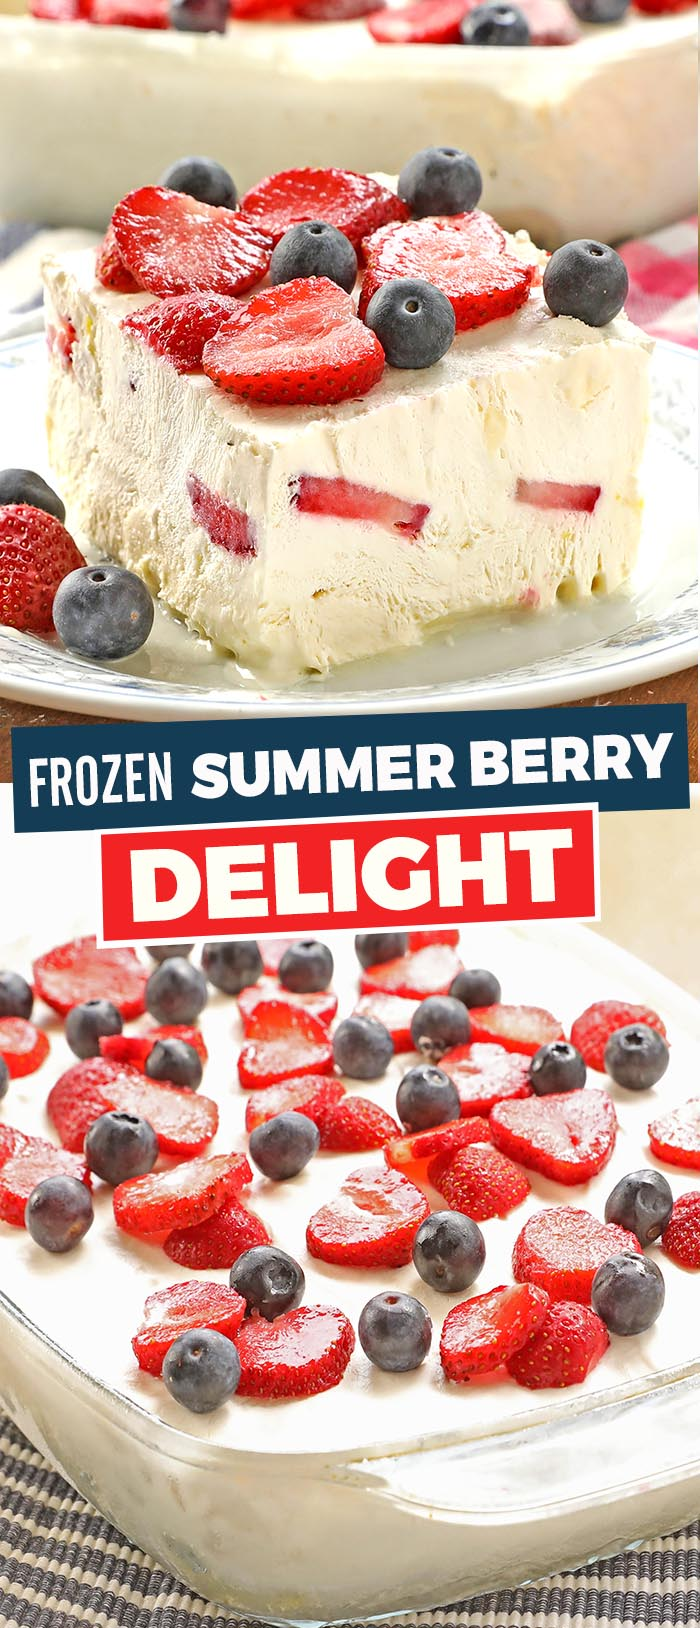 Patriotic Summer Berry Frozen Delight offer a cool and refreshing addition to any 4th of July and Summertime get-togethers.